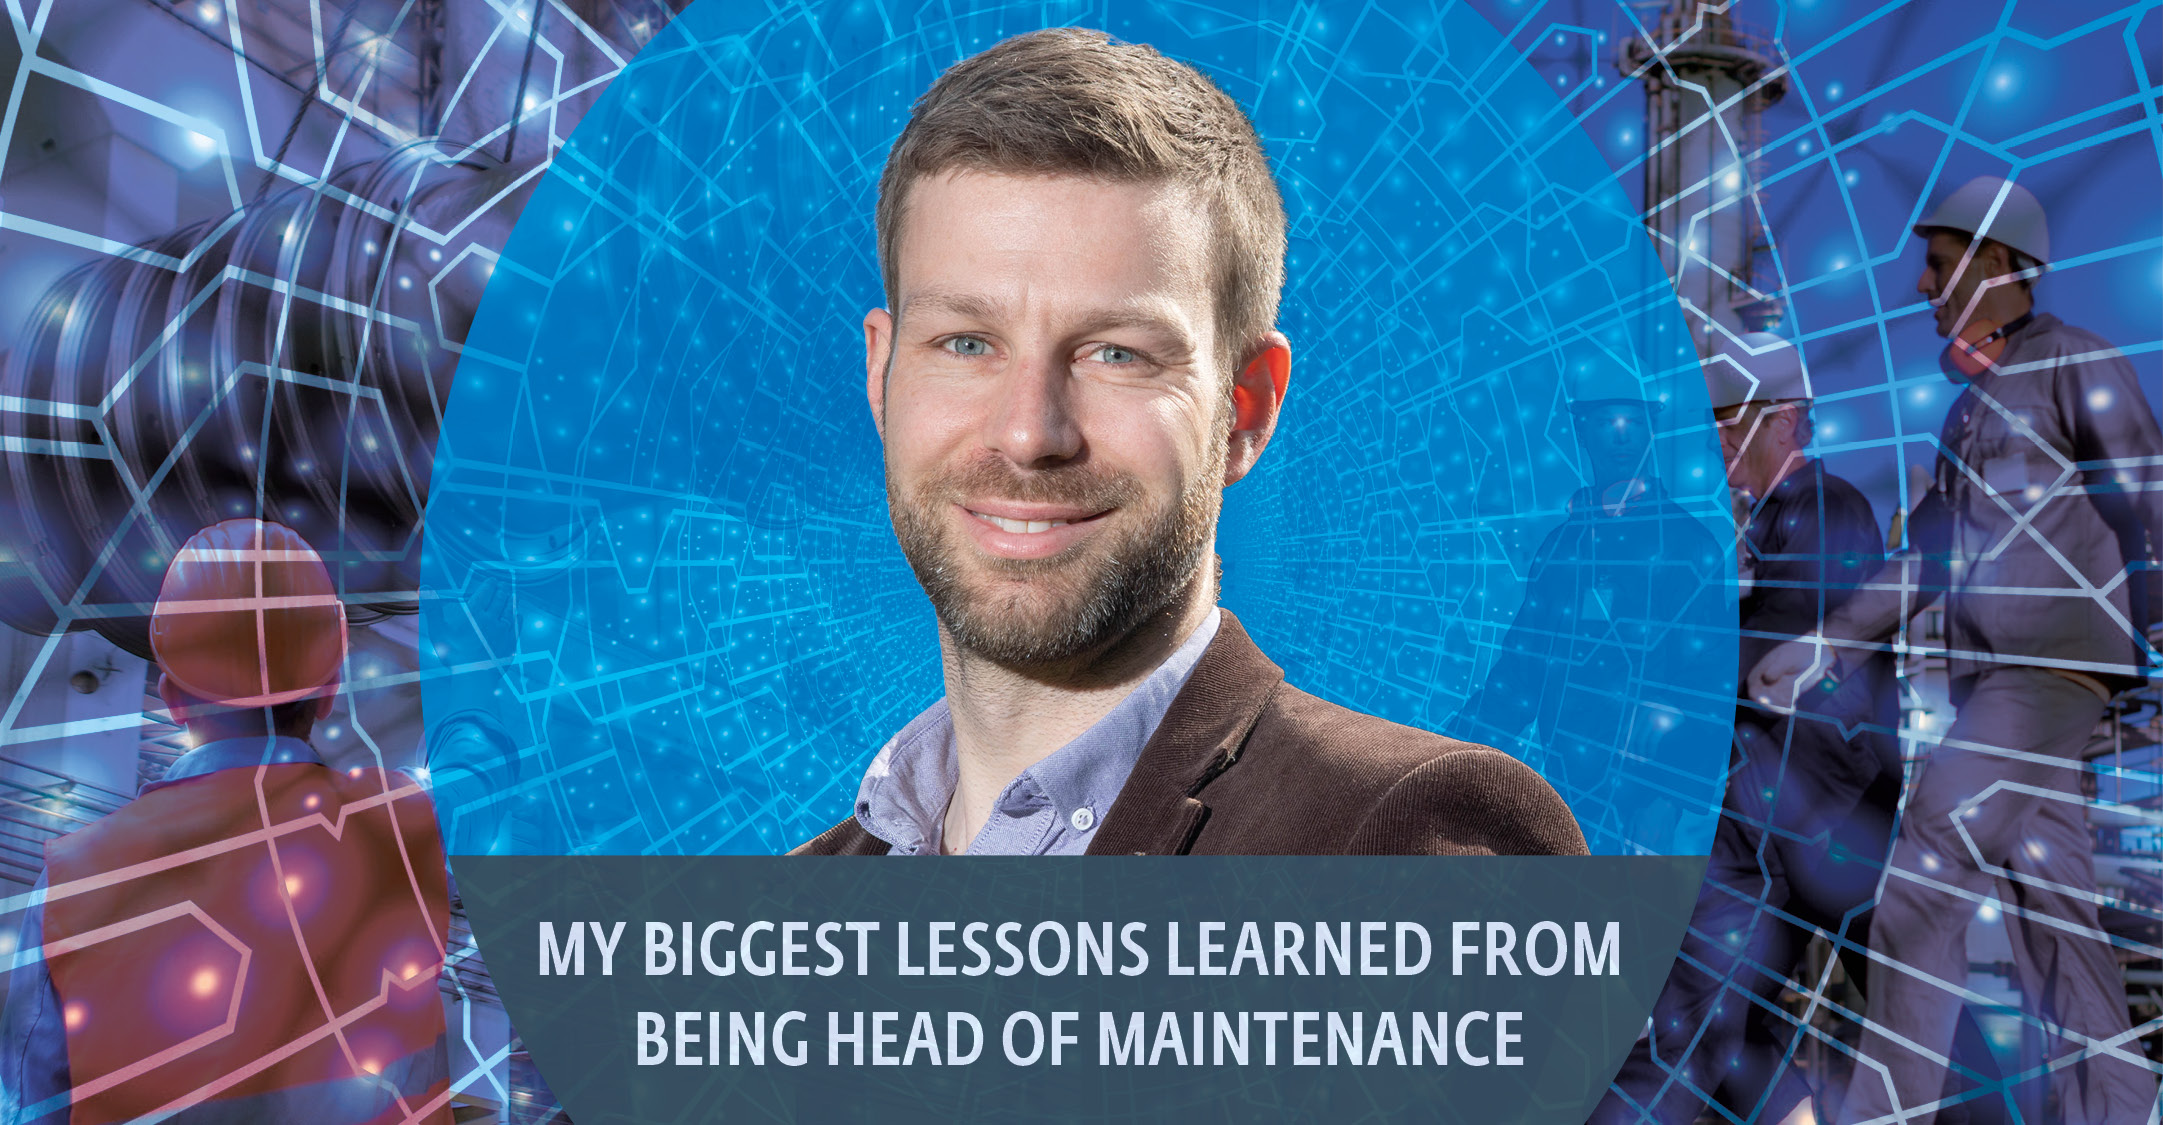 My biggest lessons learned from being Head of Maintenance